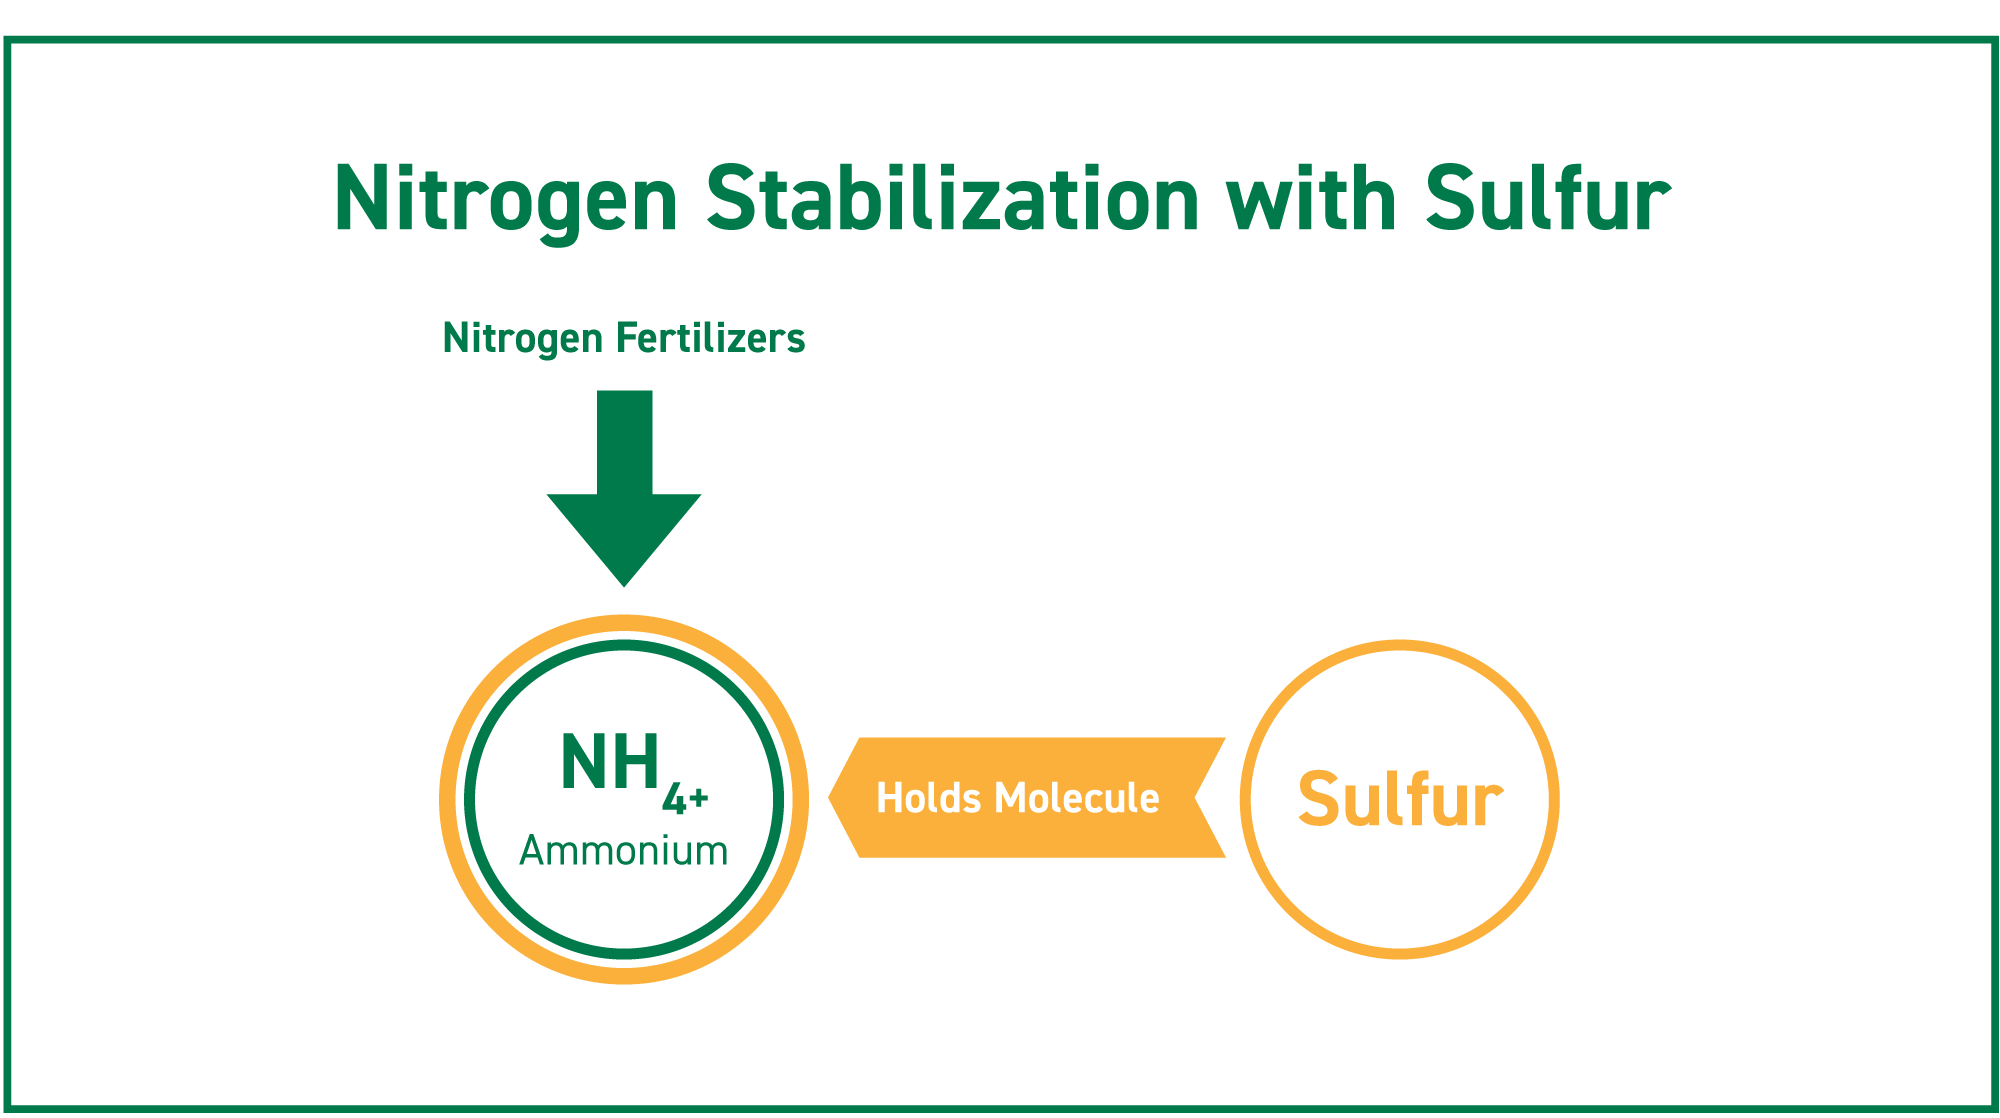 sulfur helps hold the ammonium nitrate molecule in the soil to improve nitrogen's stability